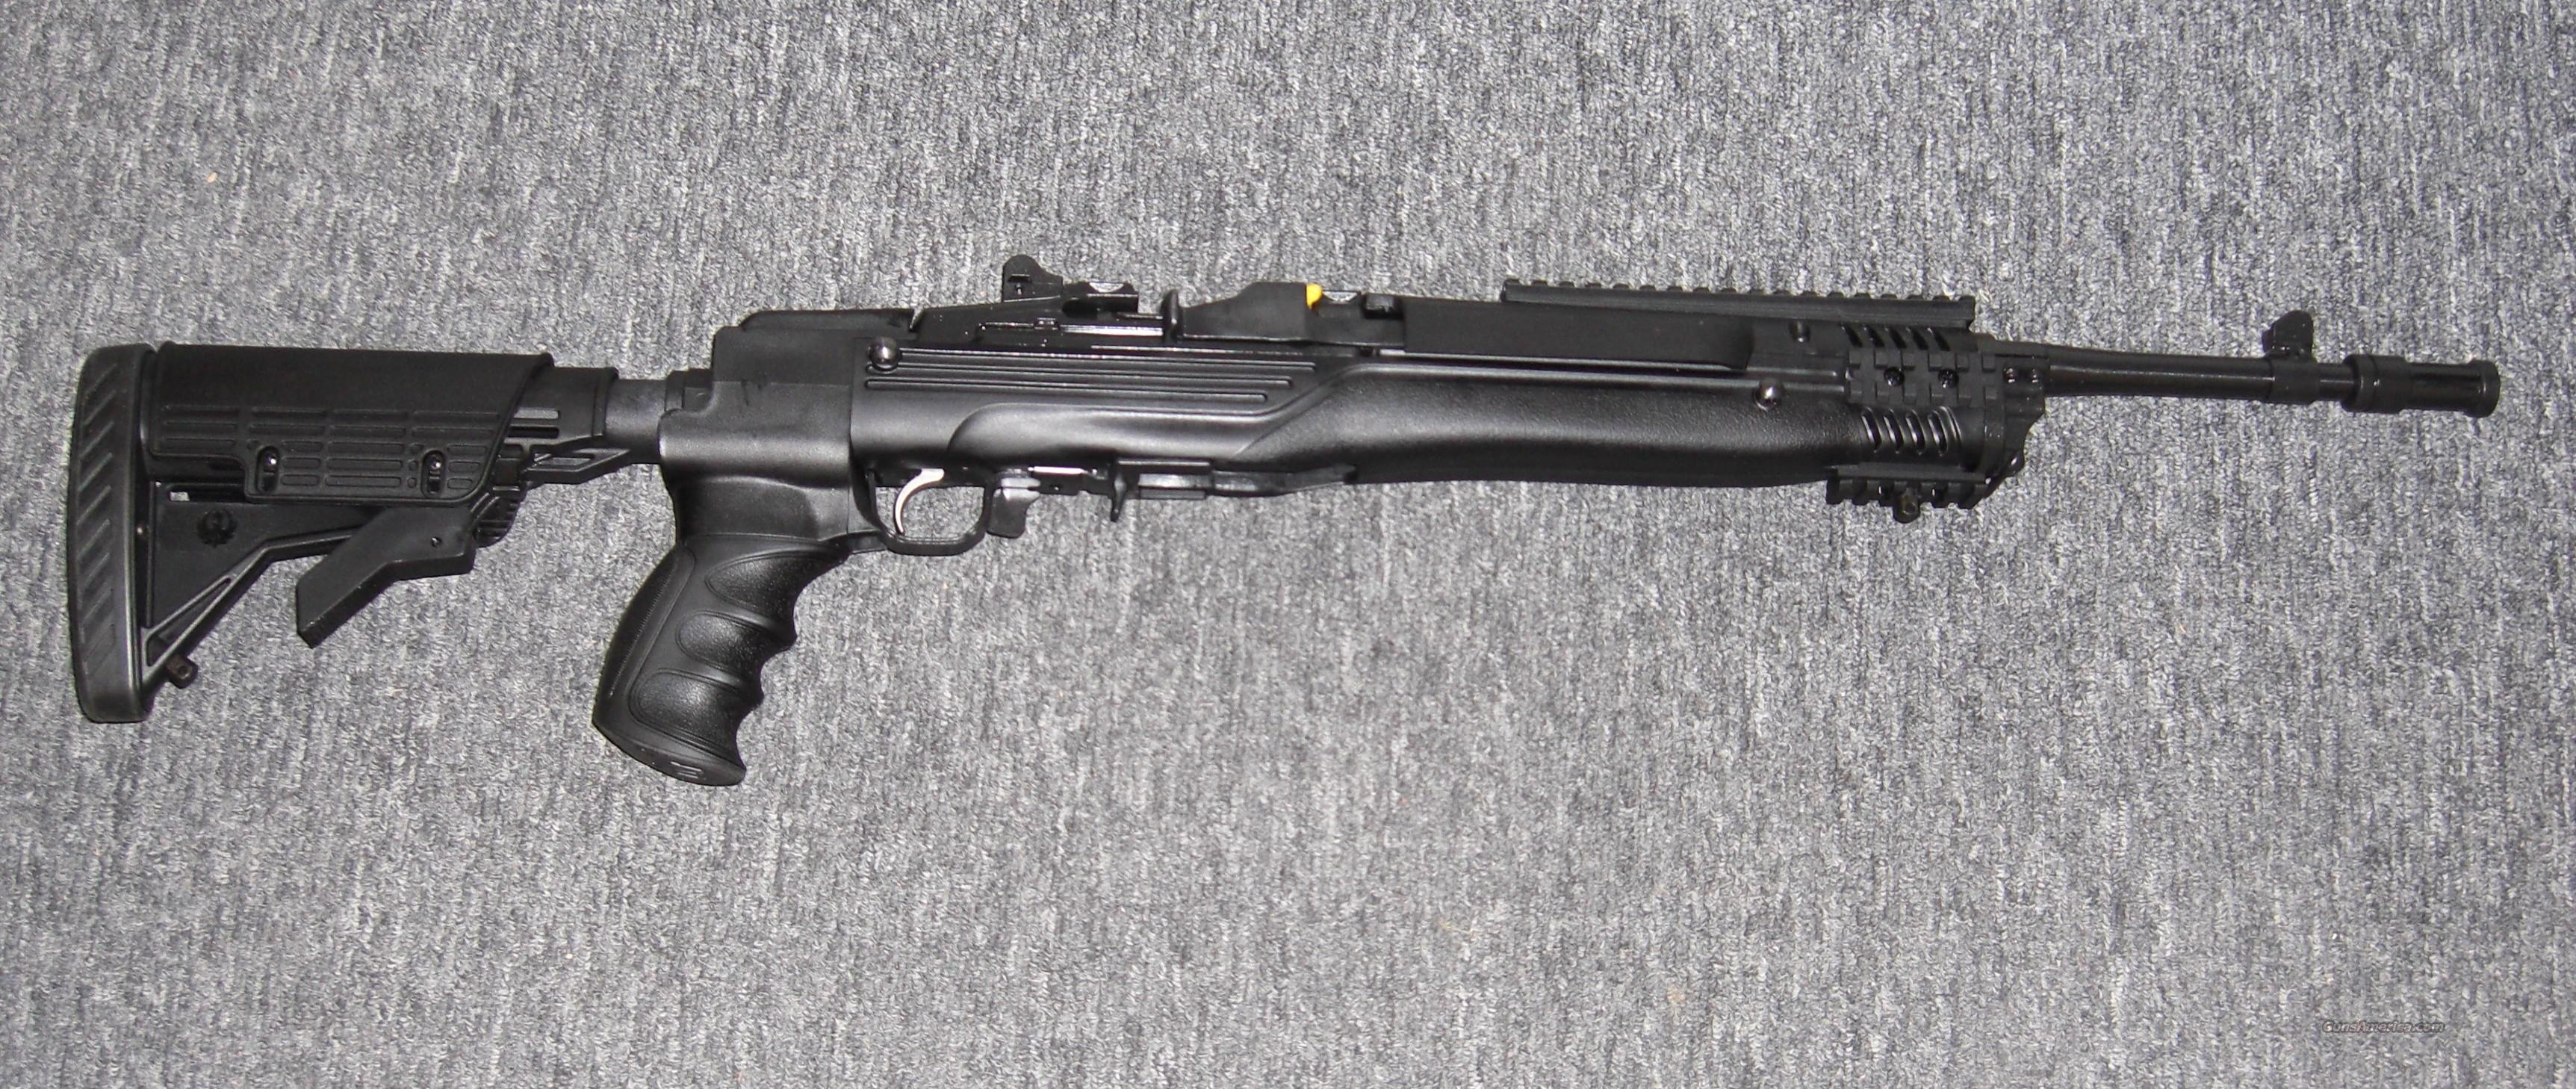 Ruger Mini 14 Tactical w/2 20-Rd Mags  Guns > Rifles > Ruger Rifles > Mini-14 Type